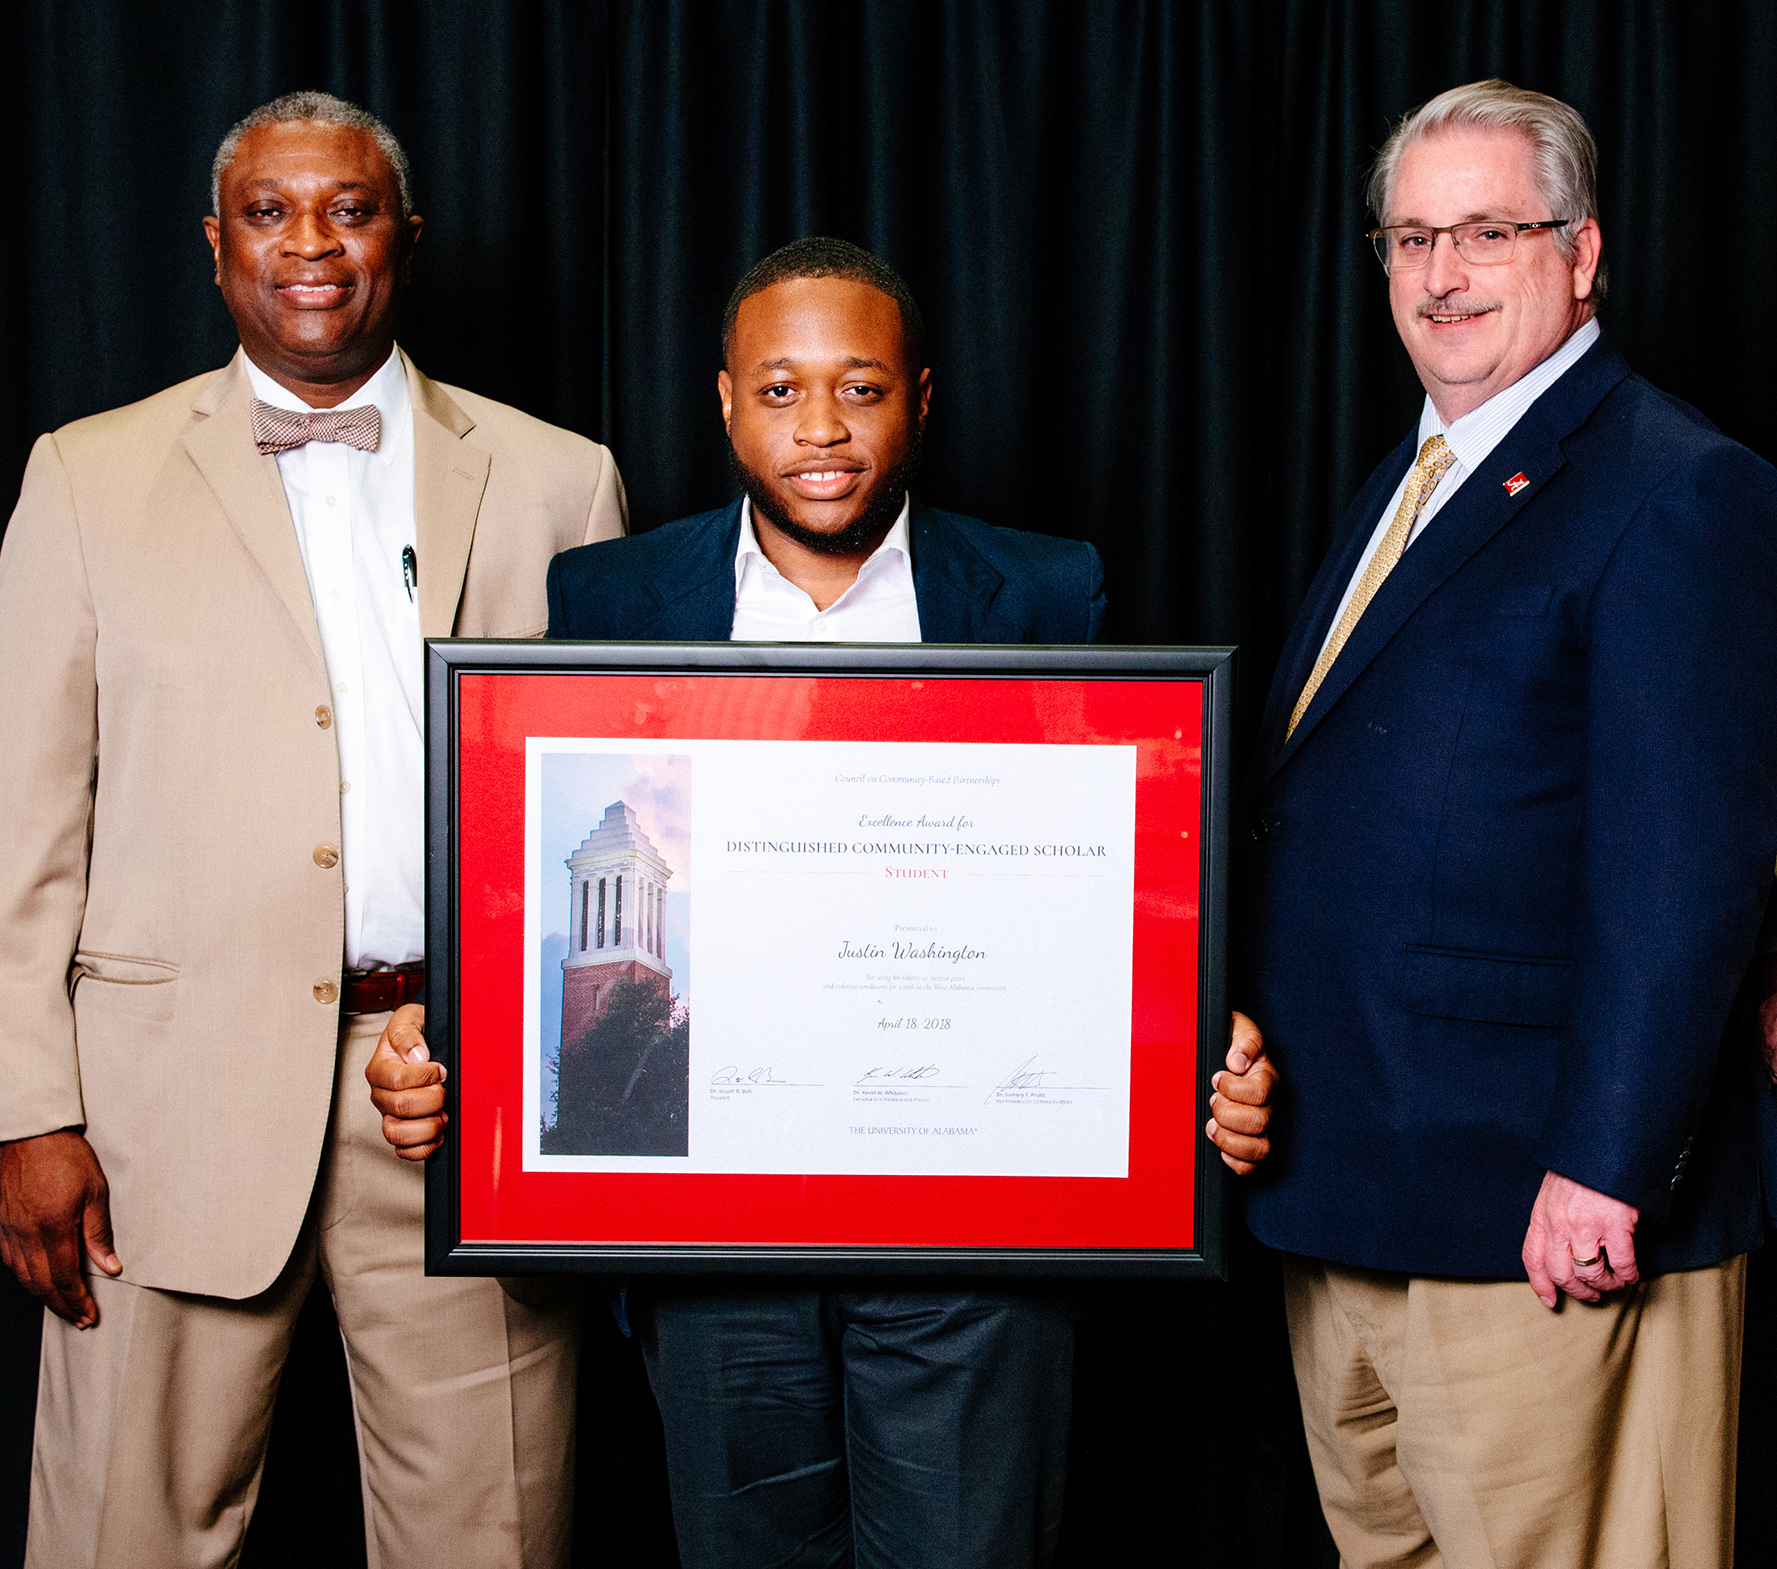 Justin Washington, MBA student, receives the Distinguished Community-Engaged Scholar Award– Student. Dr. Samory T. Pruitt is at left and Dr. John Higginbotham at right.